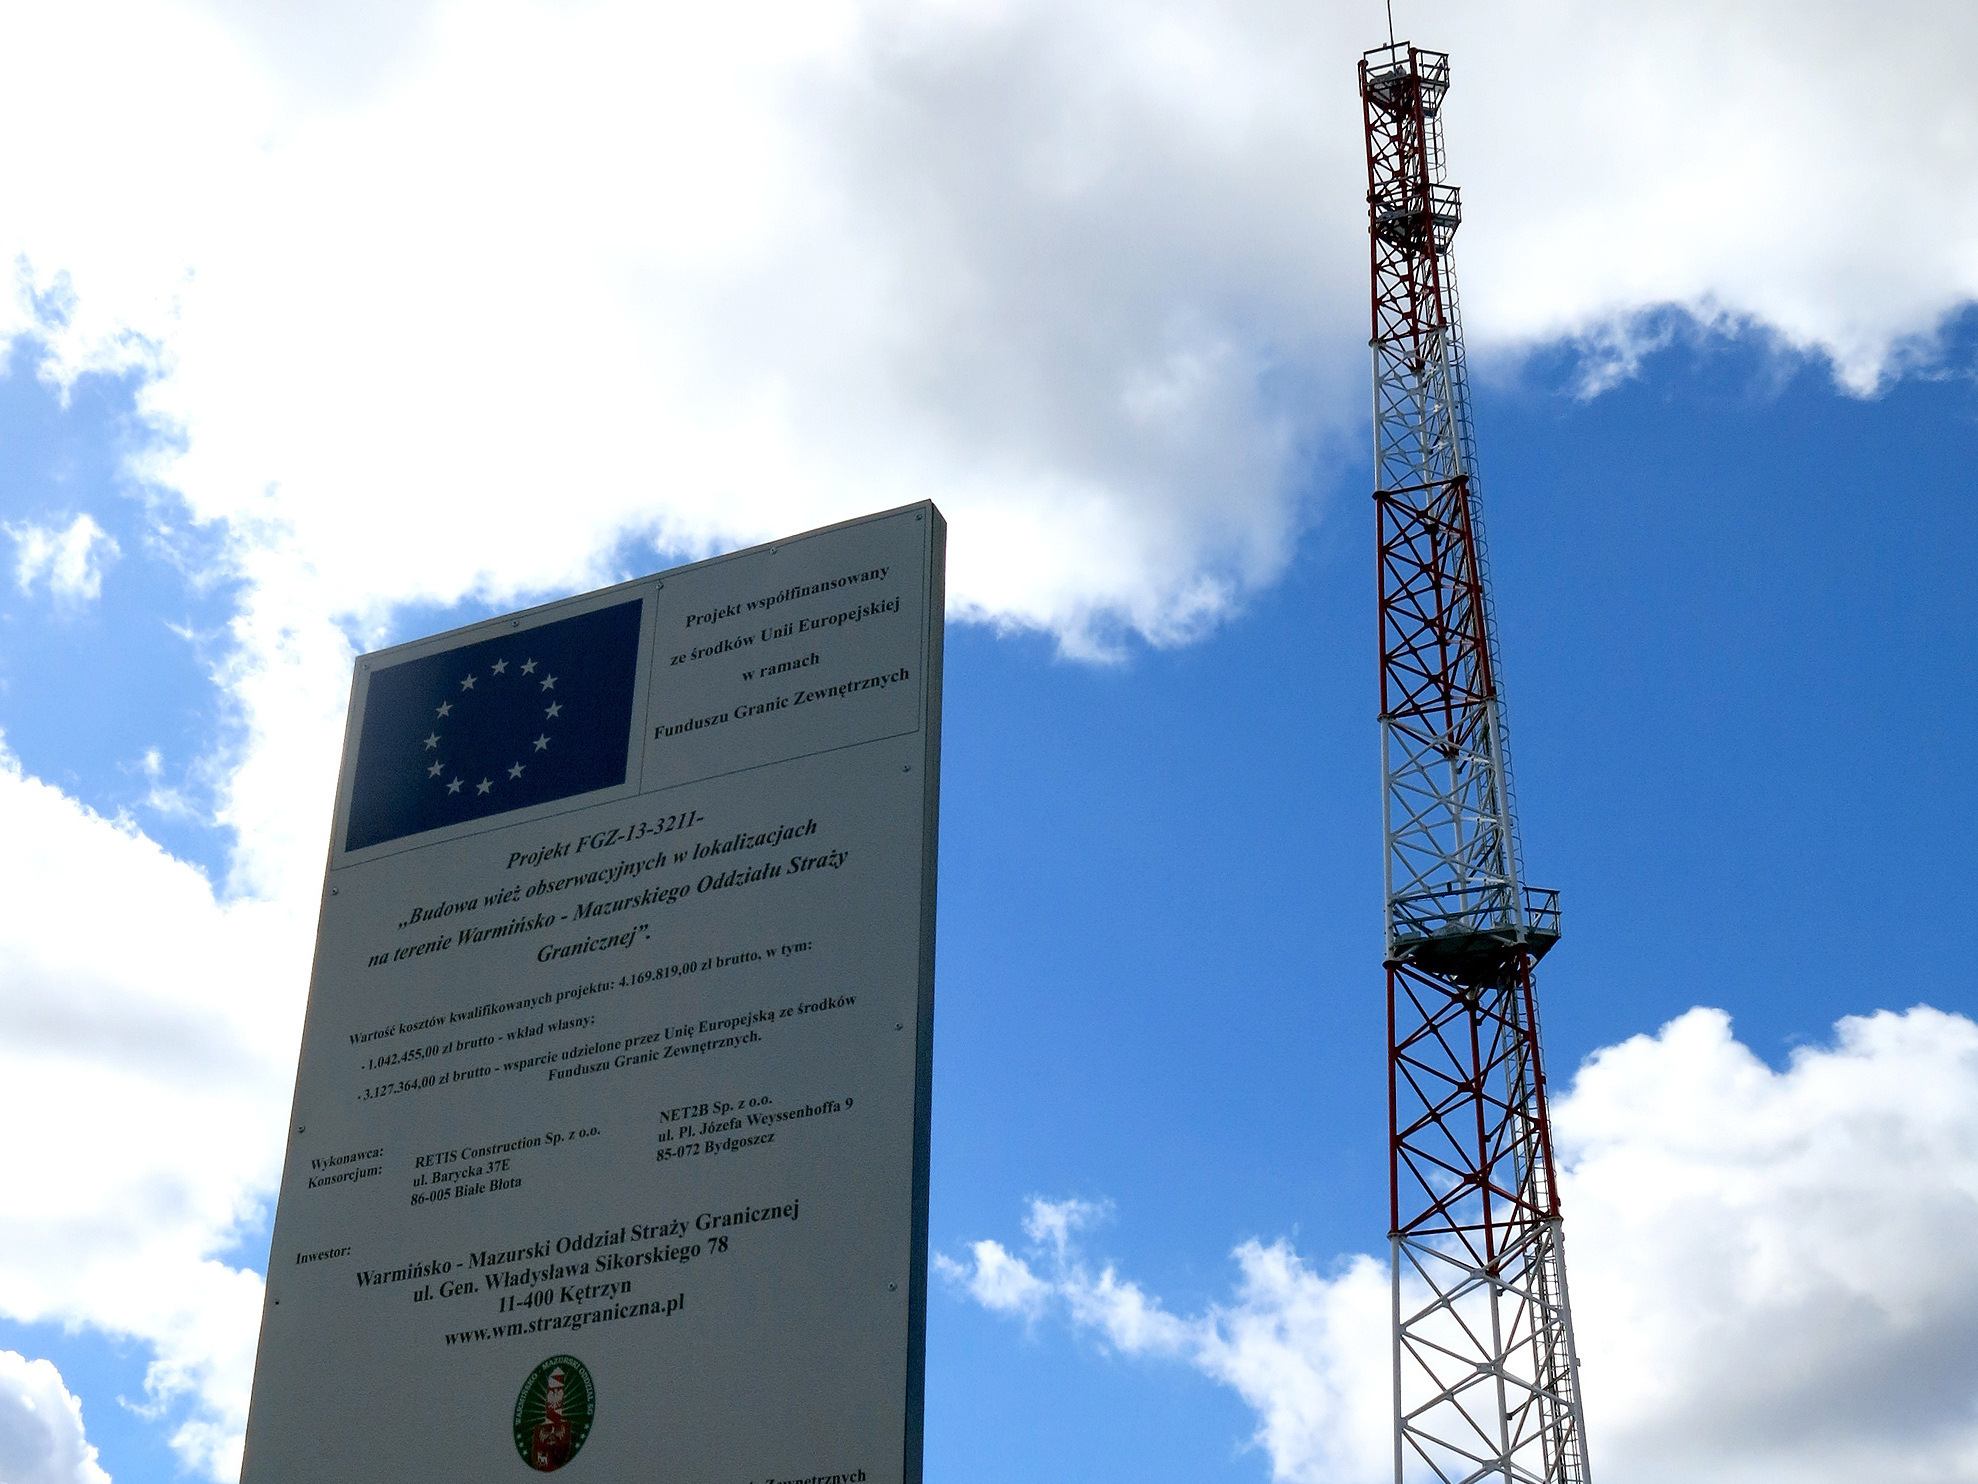 New observation towers, funded by the European Union, have sprouted recently along Poland's border with Russia. This one is located outside the sleepy Polish border village of Parkoszewo. (Soraya Sarhaddi Nelson/NPR)